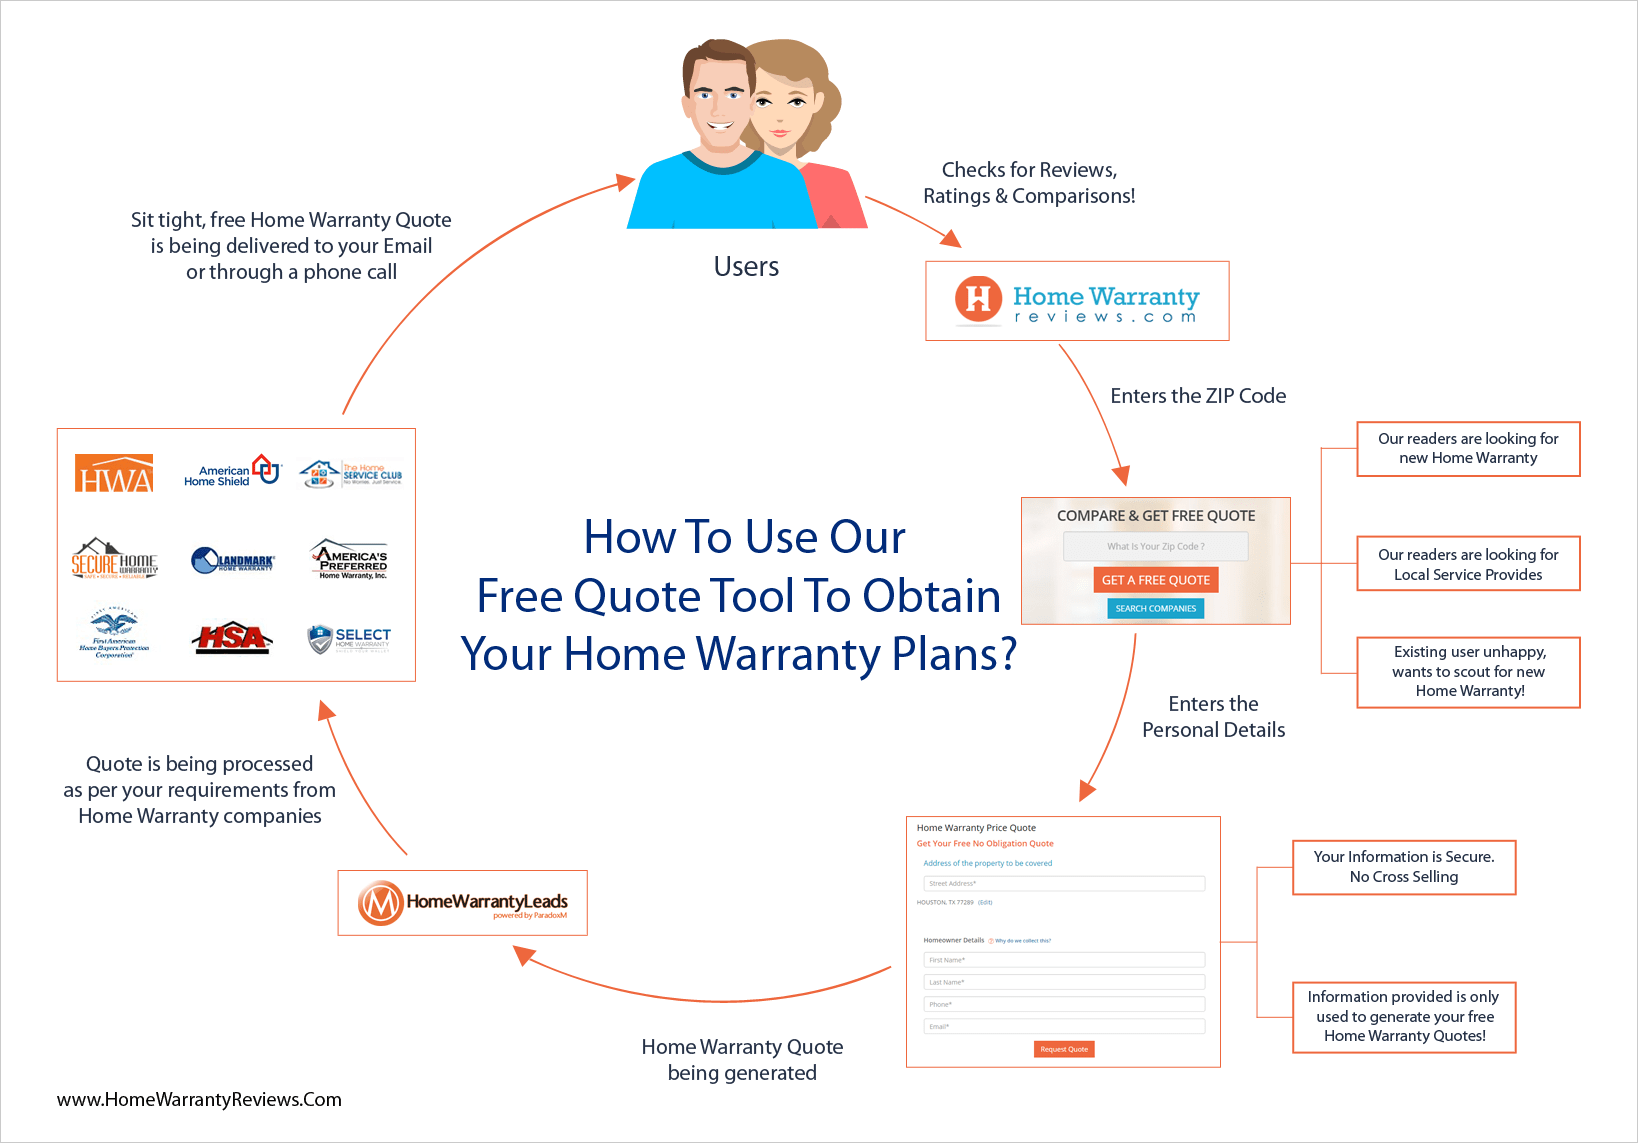 Find Out The Right Home Warranty Plan For You!